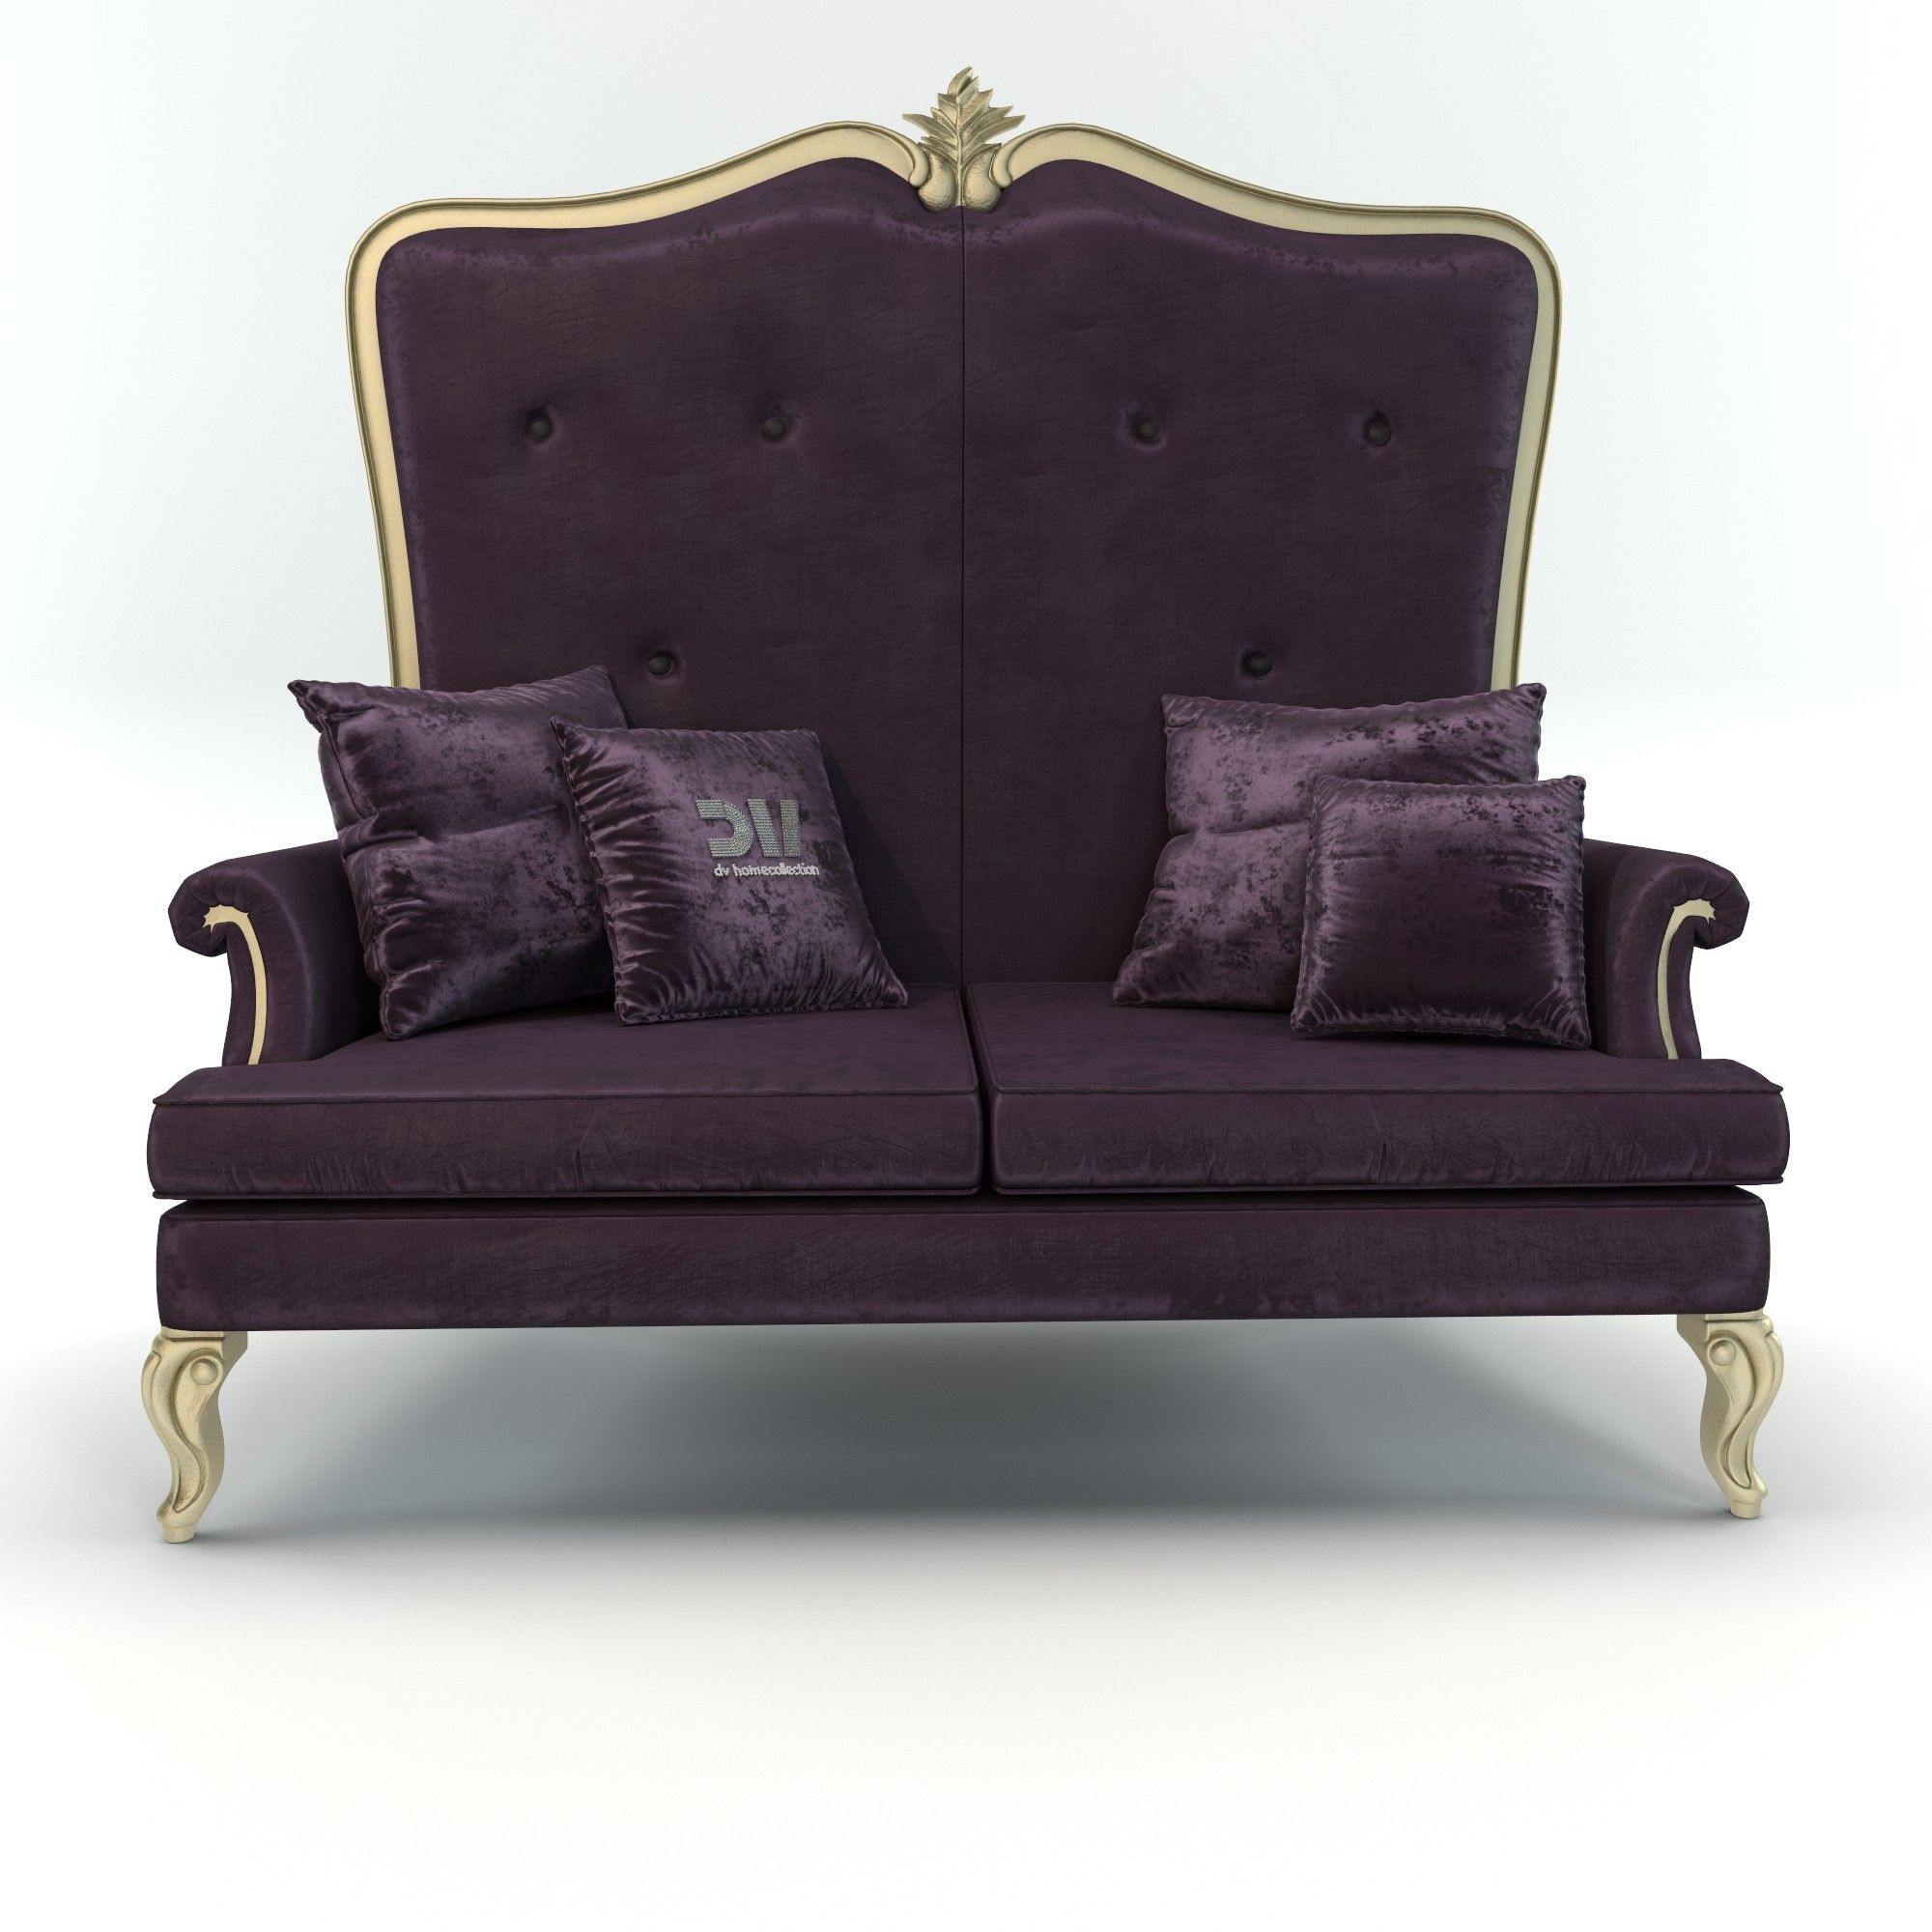 Royal Classic Elegant Italian Vogue Sofa By DV Home Collection 3D